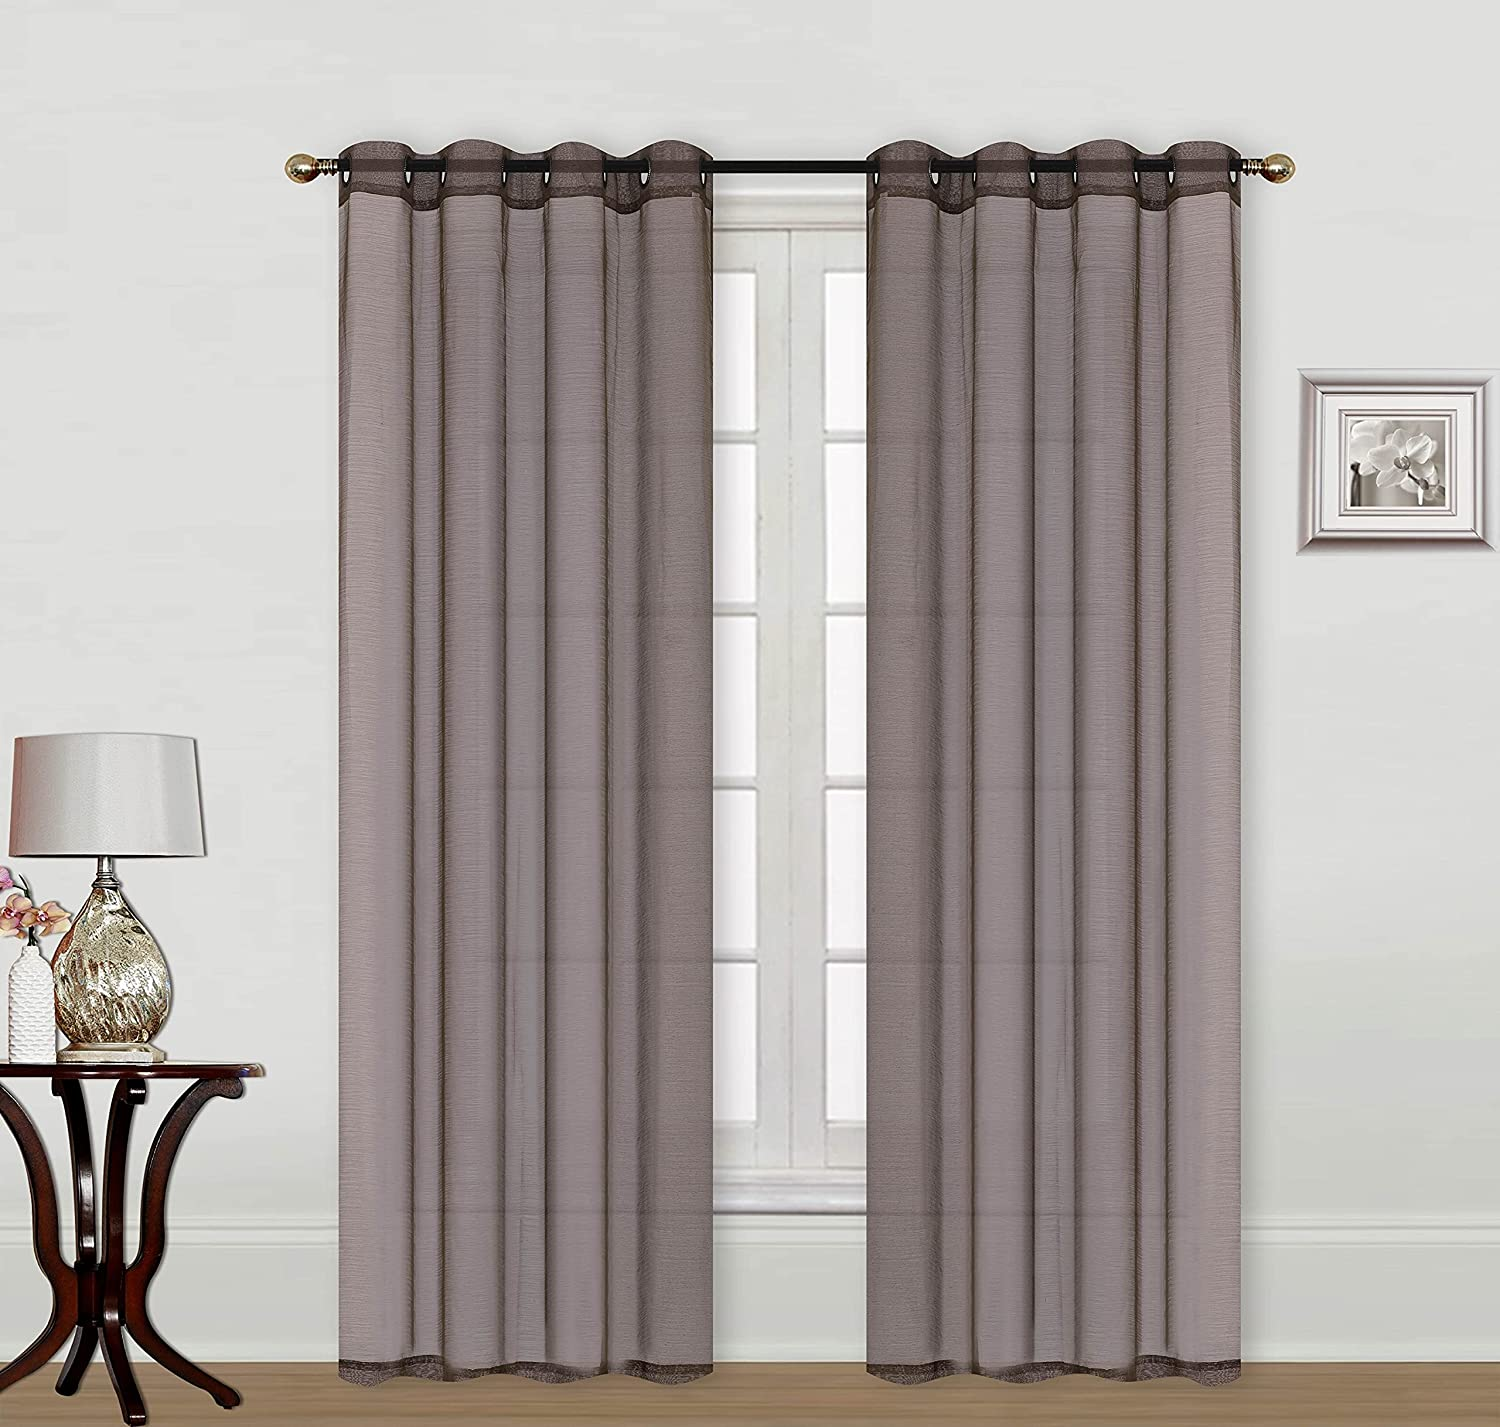 2pc Grommet Top Voile Textured Sheer Window Set Panel Attention brand Tr Curtain Max 78% OFF